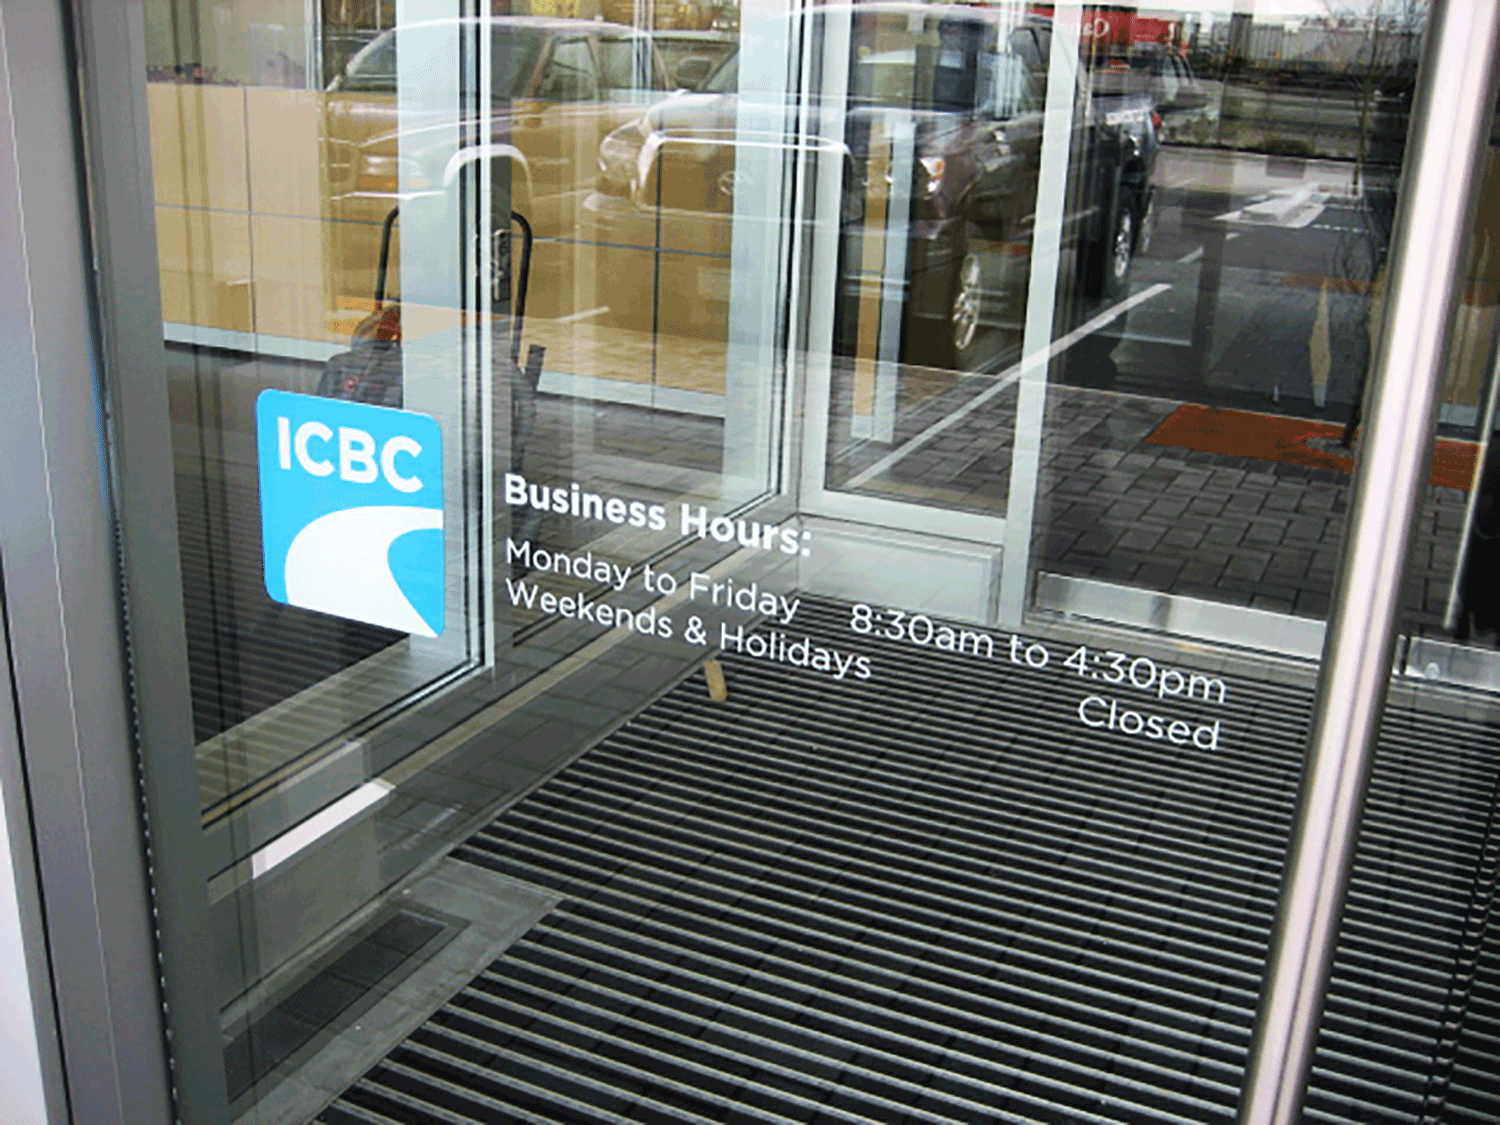 ICBC-Coquitlam-001.png